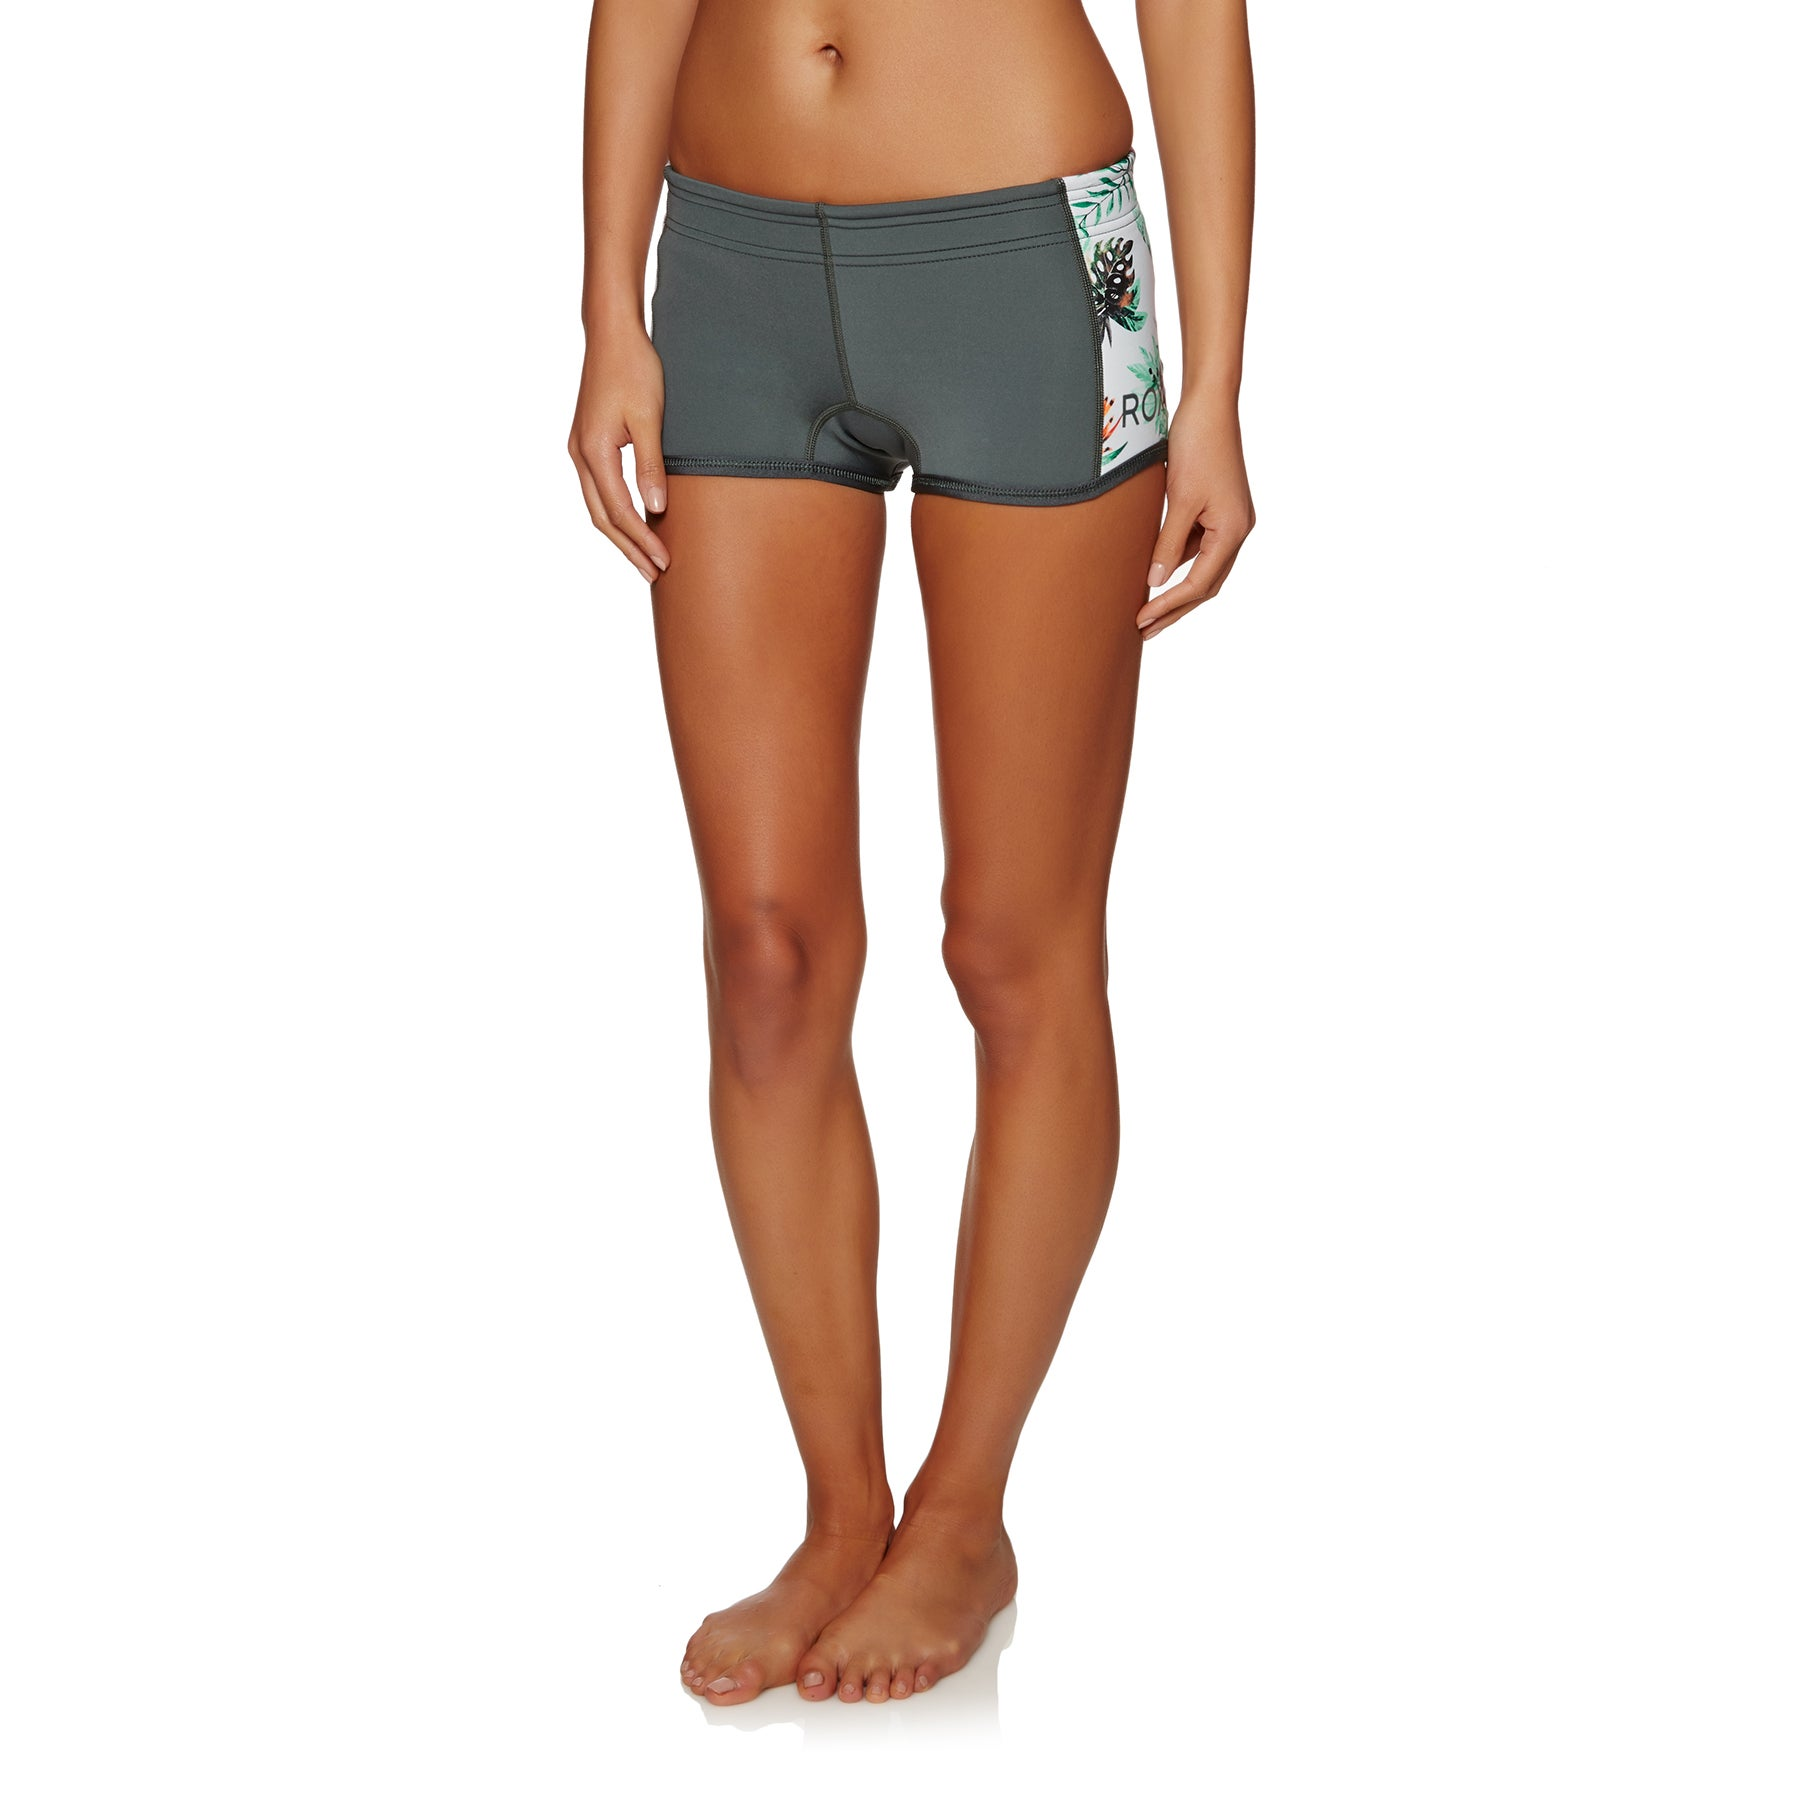 Roxy 1mm 2018 Syncro Reef Short Womens Wetsuit Shorts - Ash/ Pistaccio